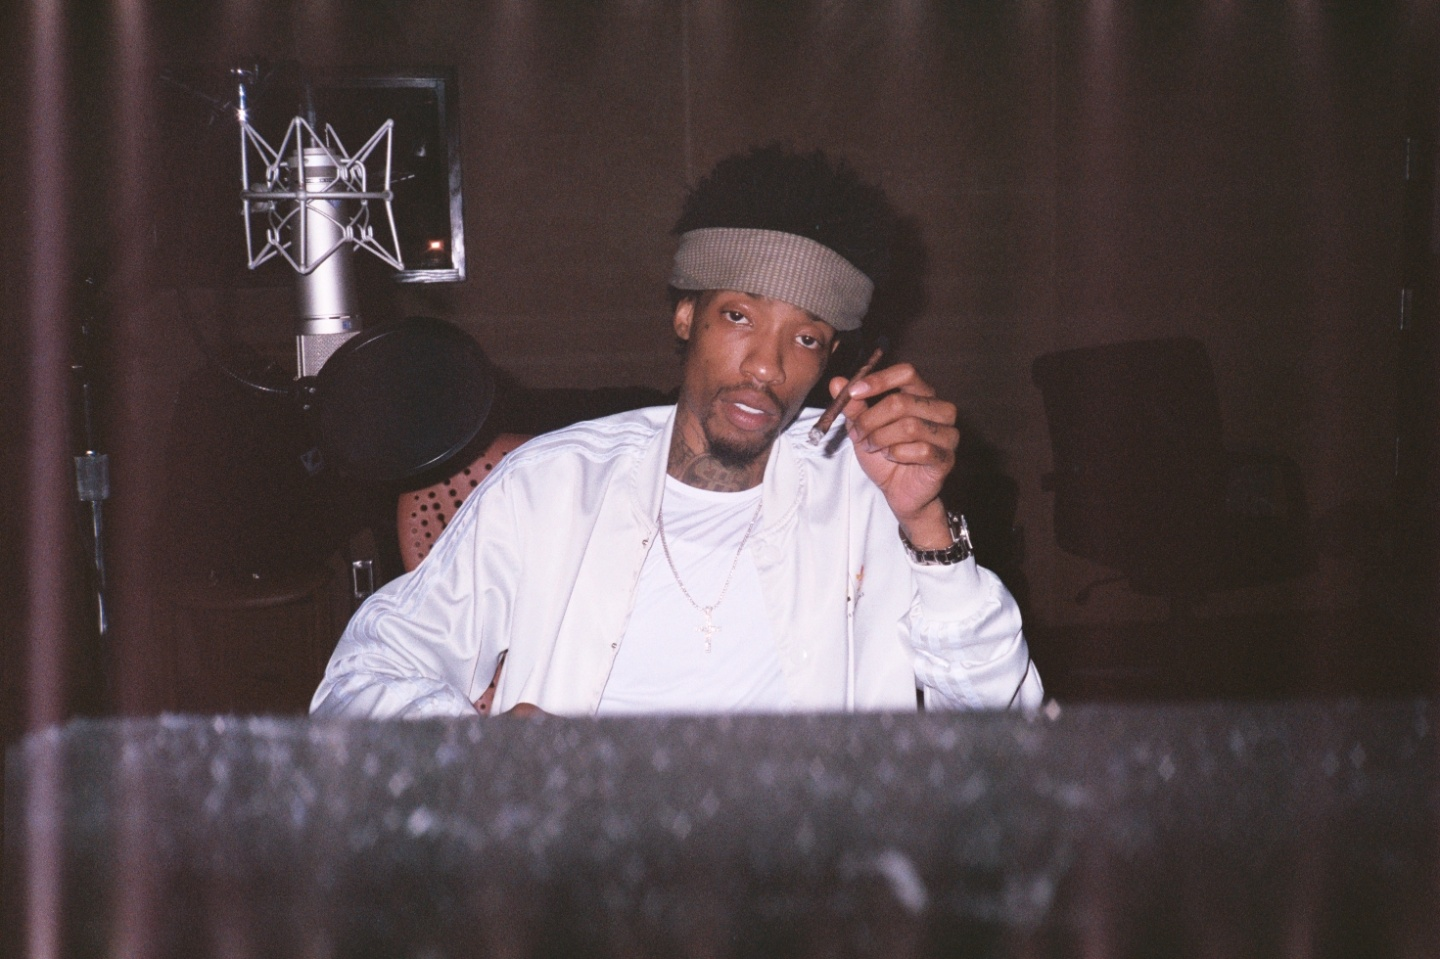 Protect Sonny Digital at all costs